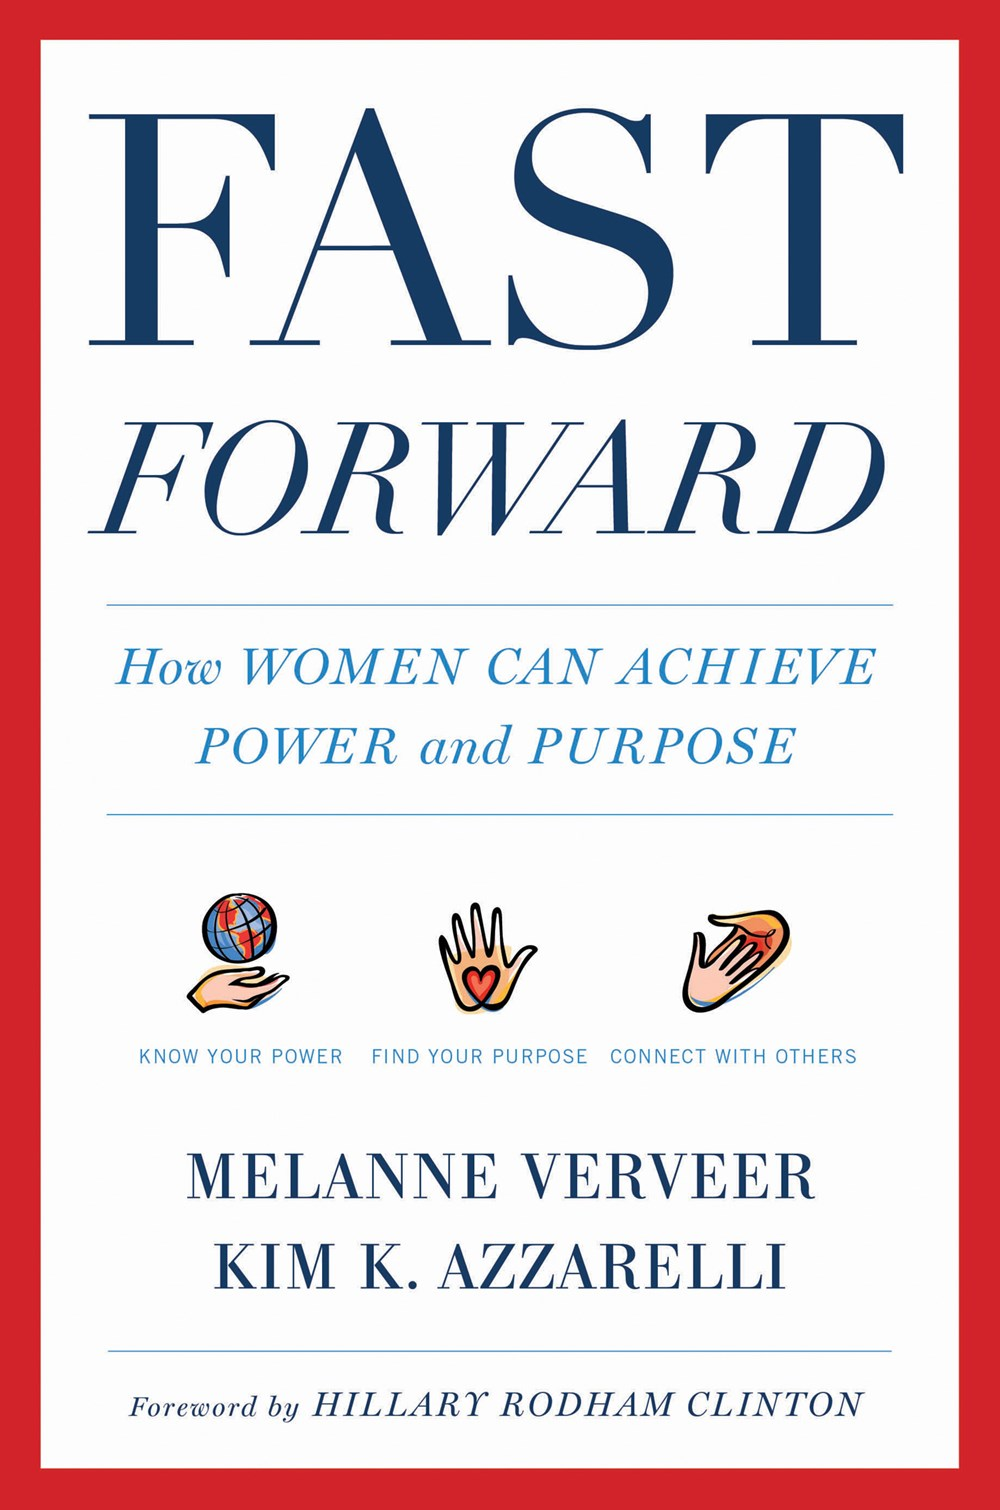 Fast Forward How Women Can Achieve Power and Purpose